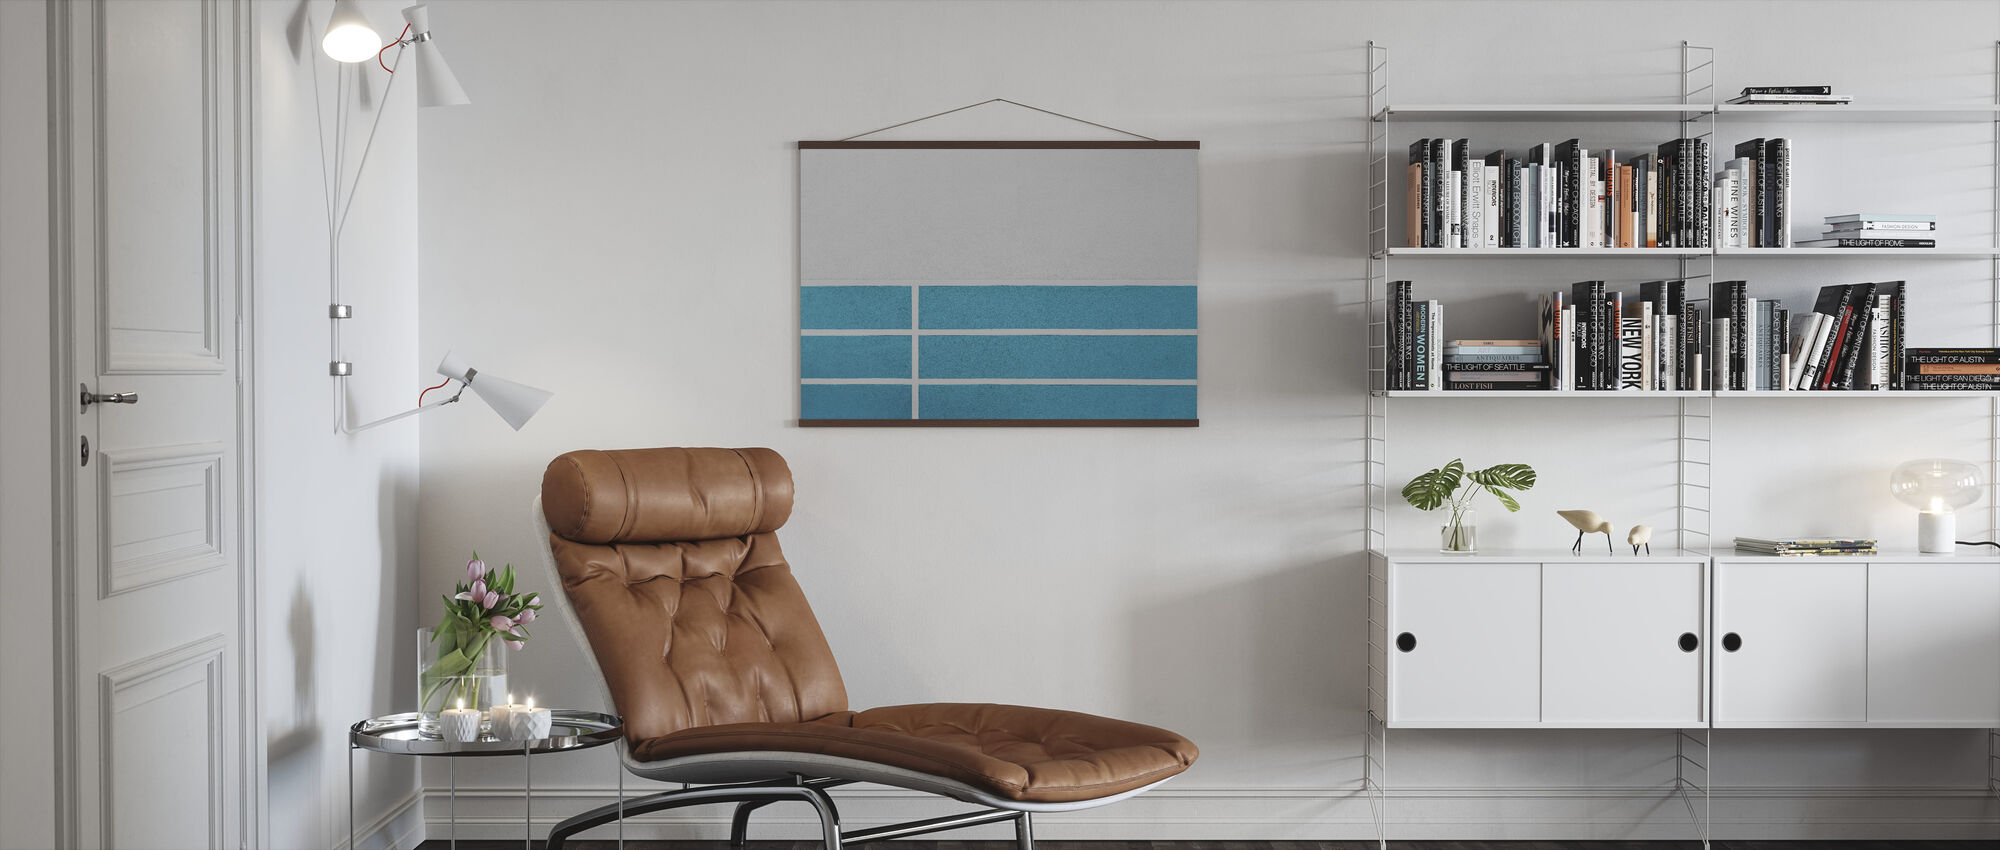 Blue Lines Wall - Poster - Living Room